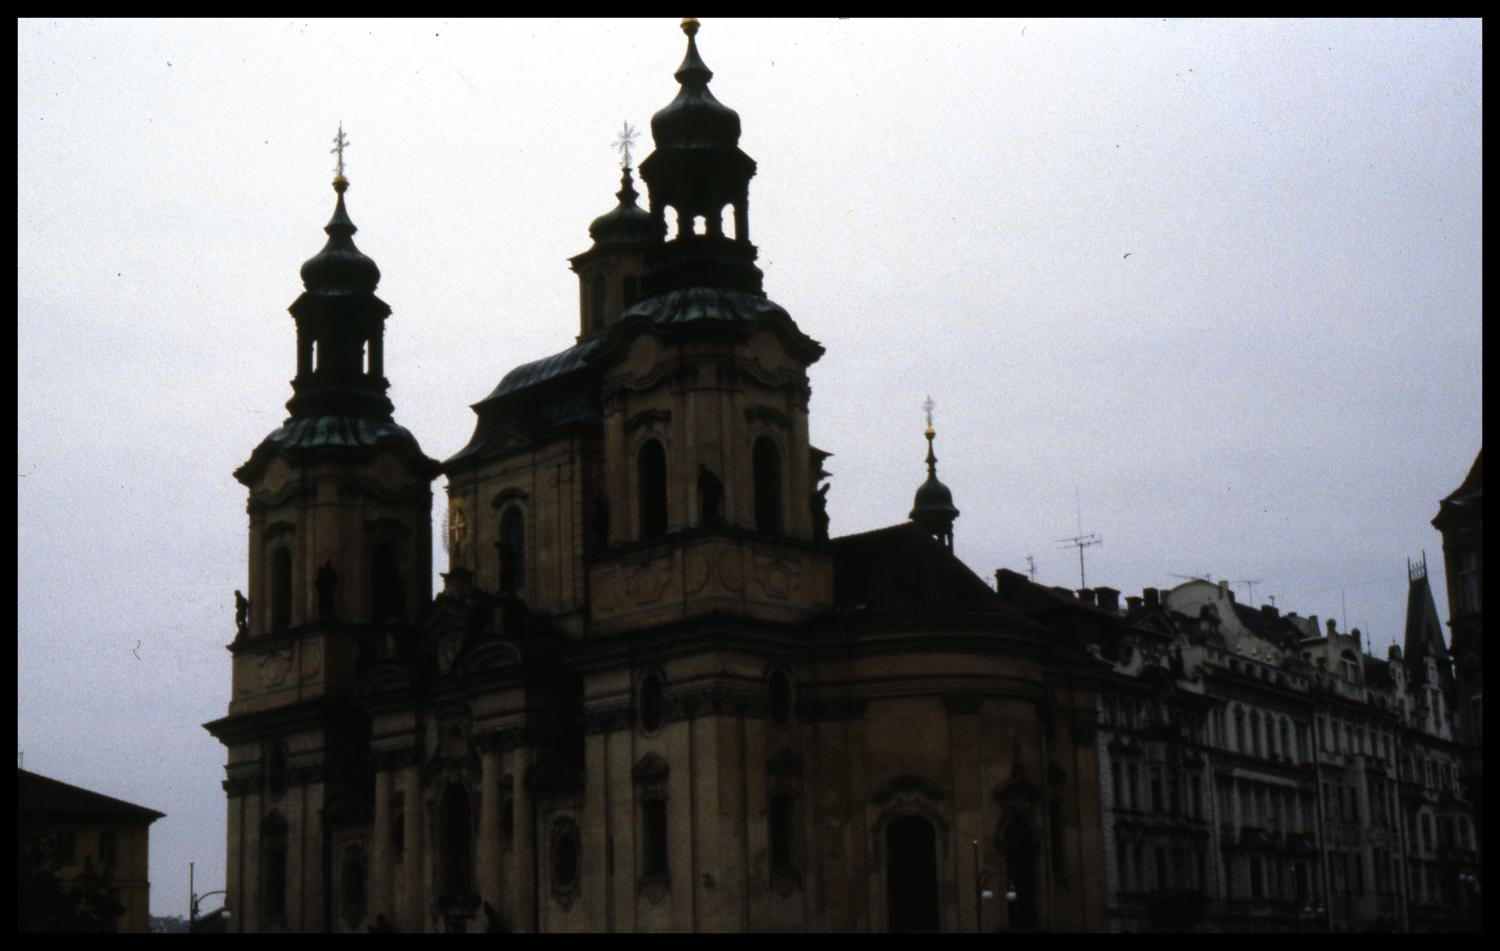 [St. Nicholas Church]                                                                                                      [Sequence #]: 1 of 1